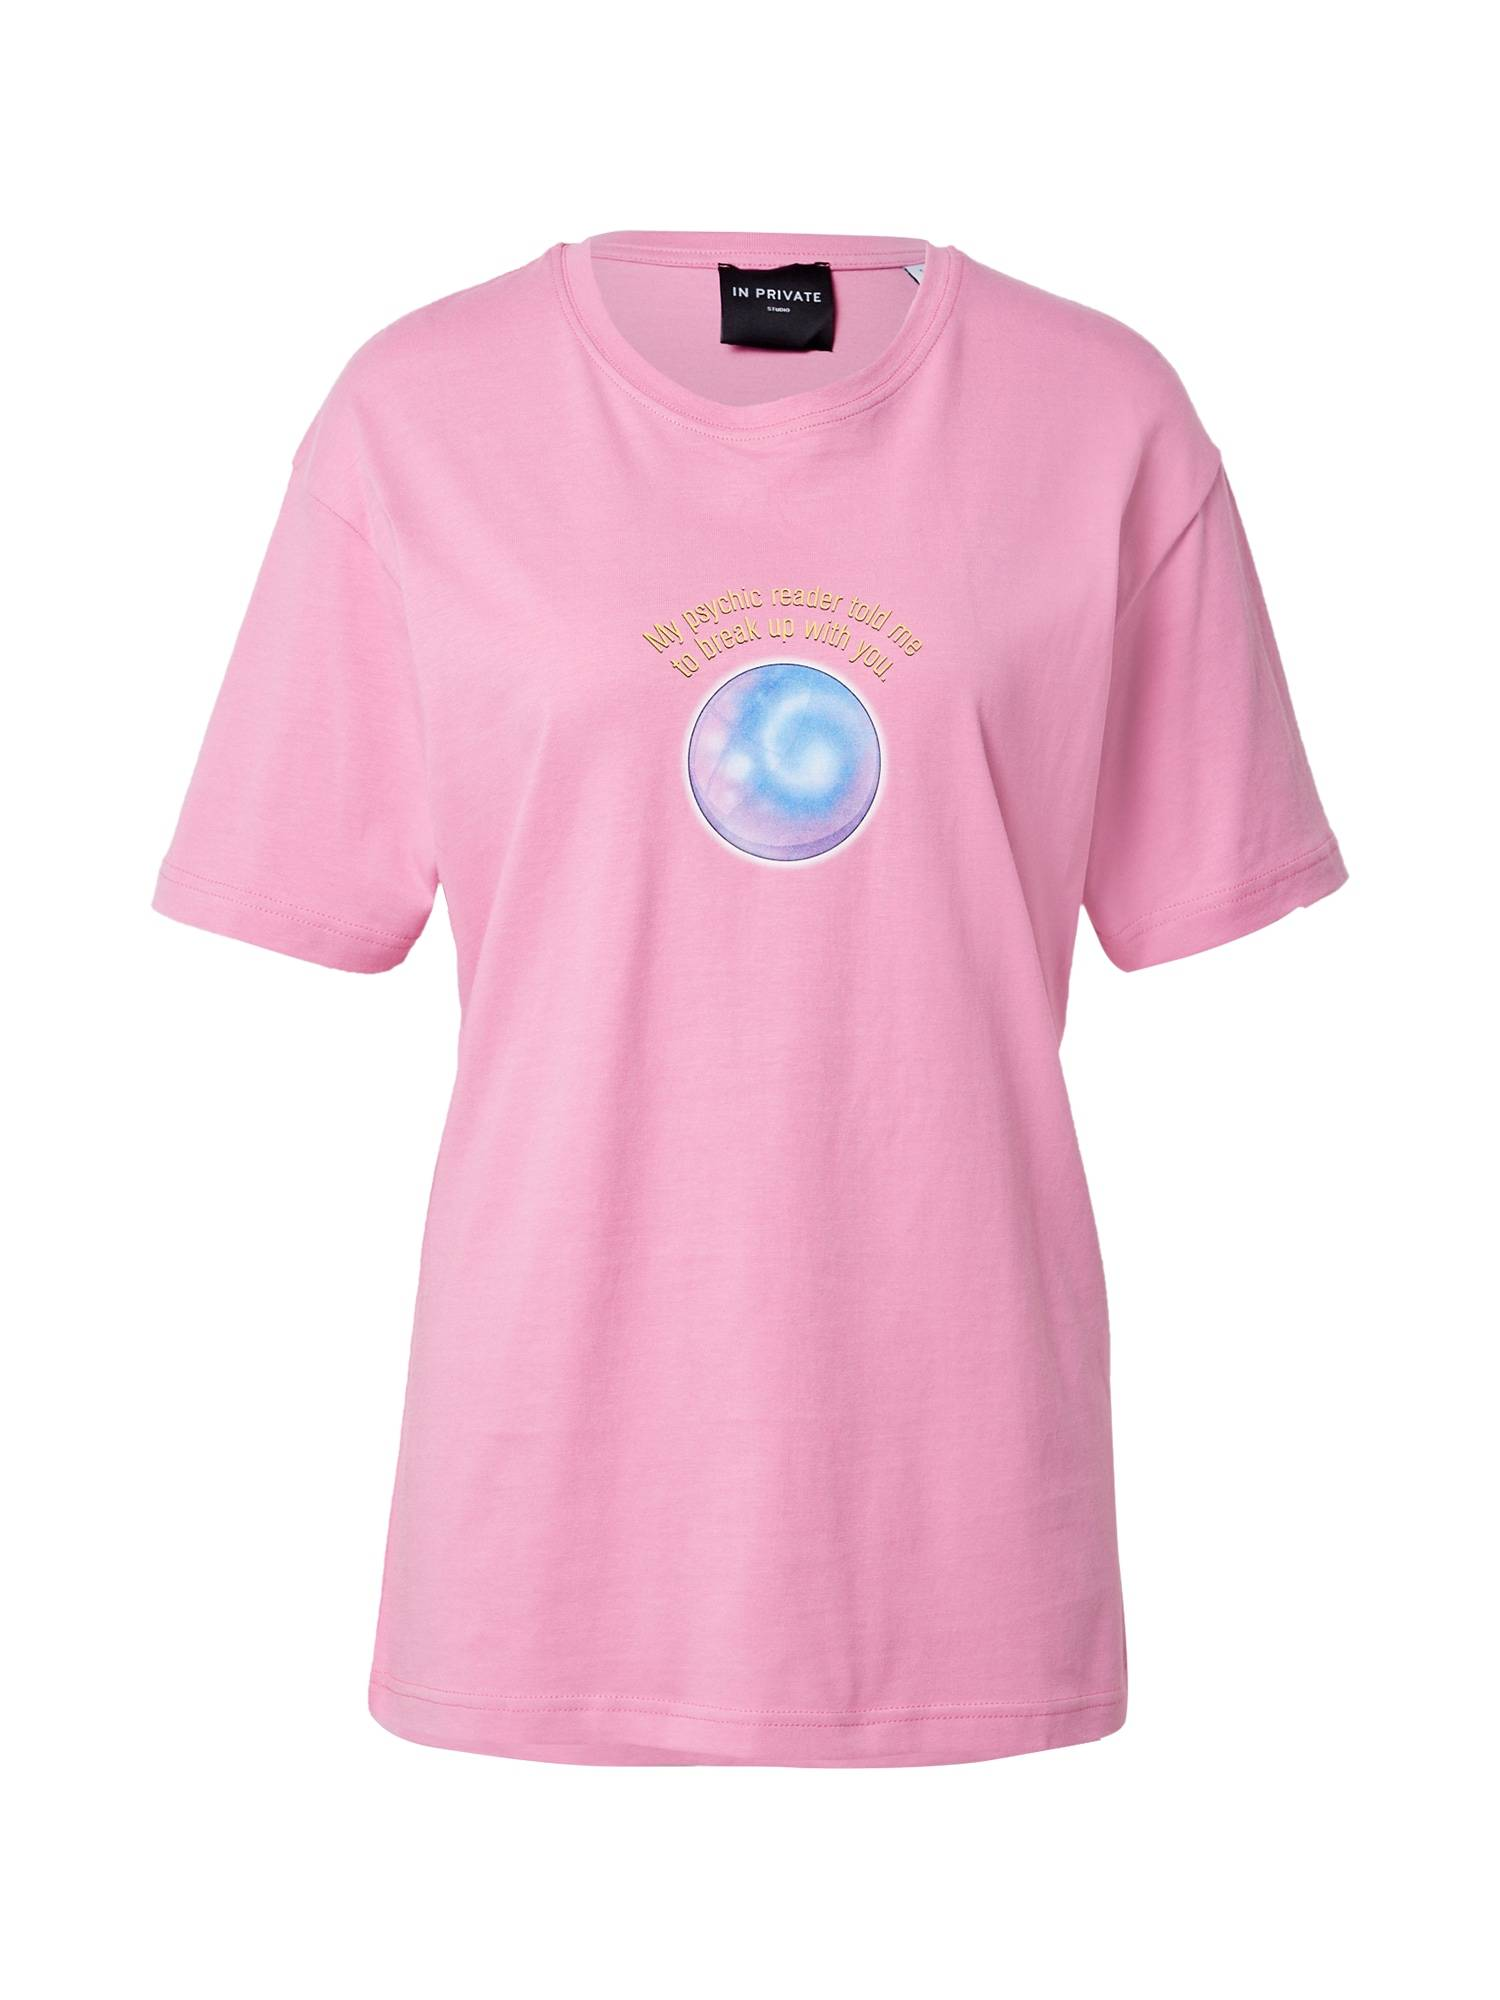 IN PRIVATE Studio T-shirt 'BIANCA'S'  - Rose - Taille: M - female